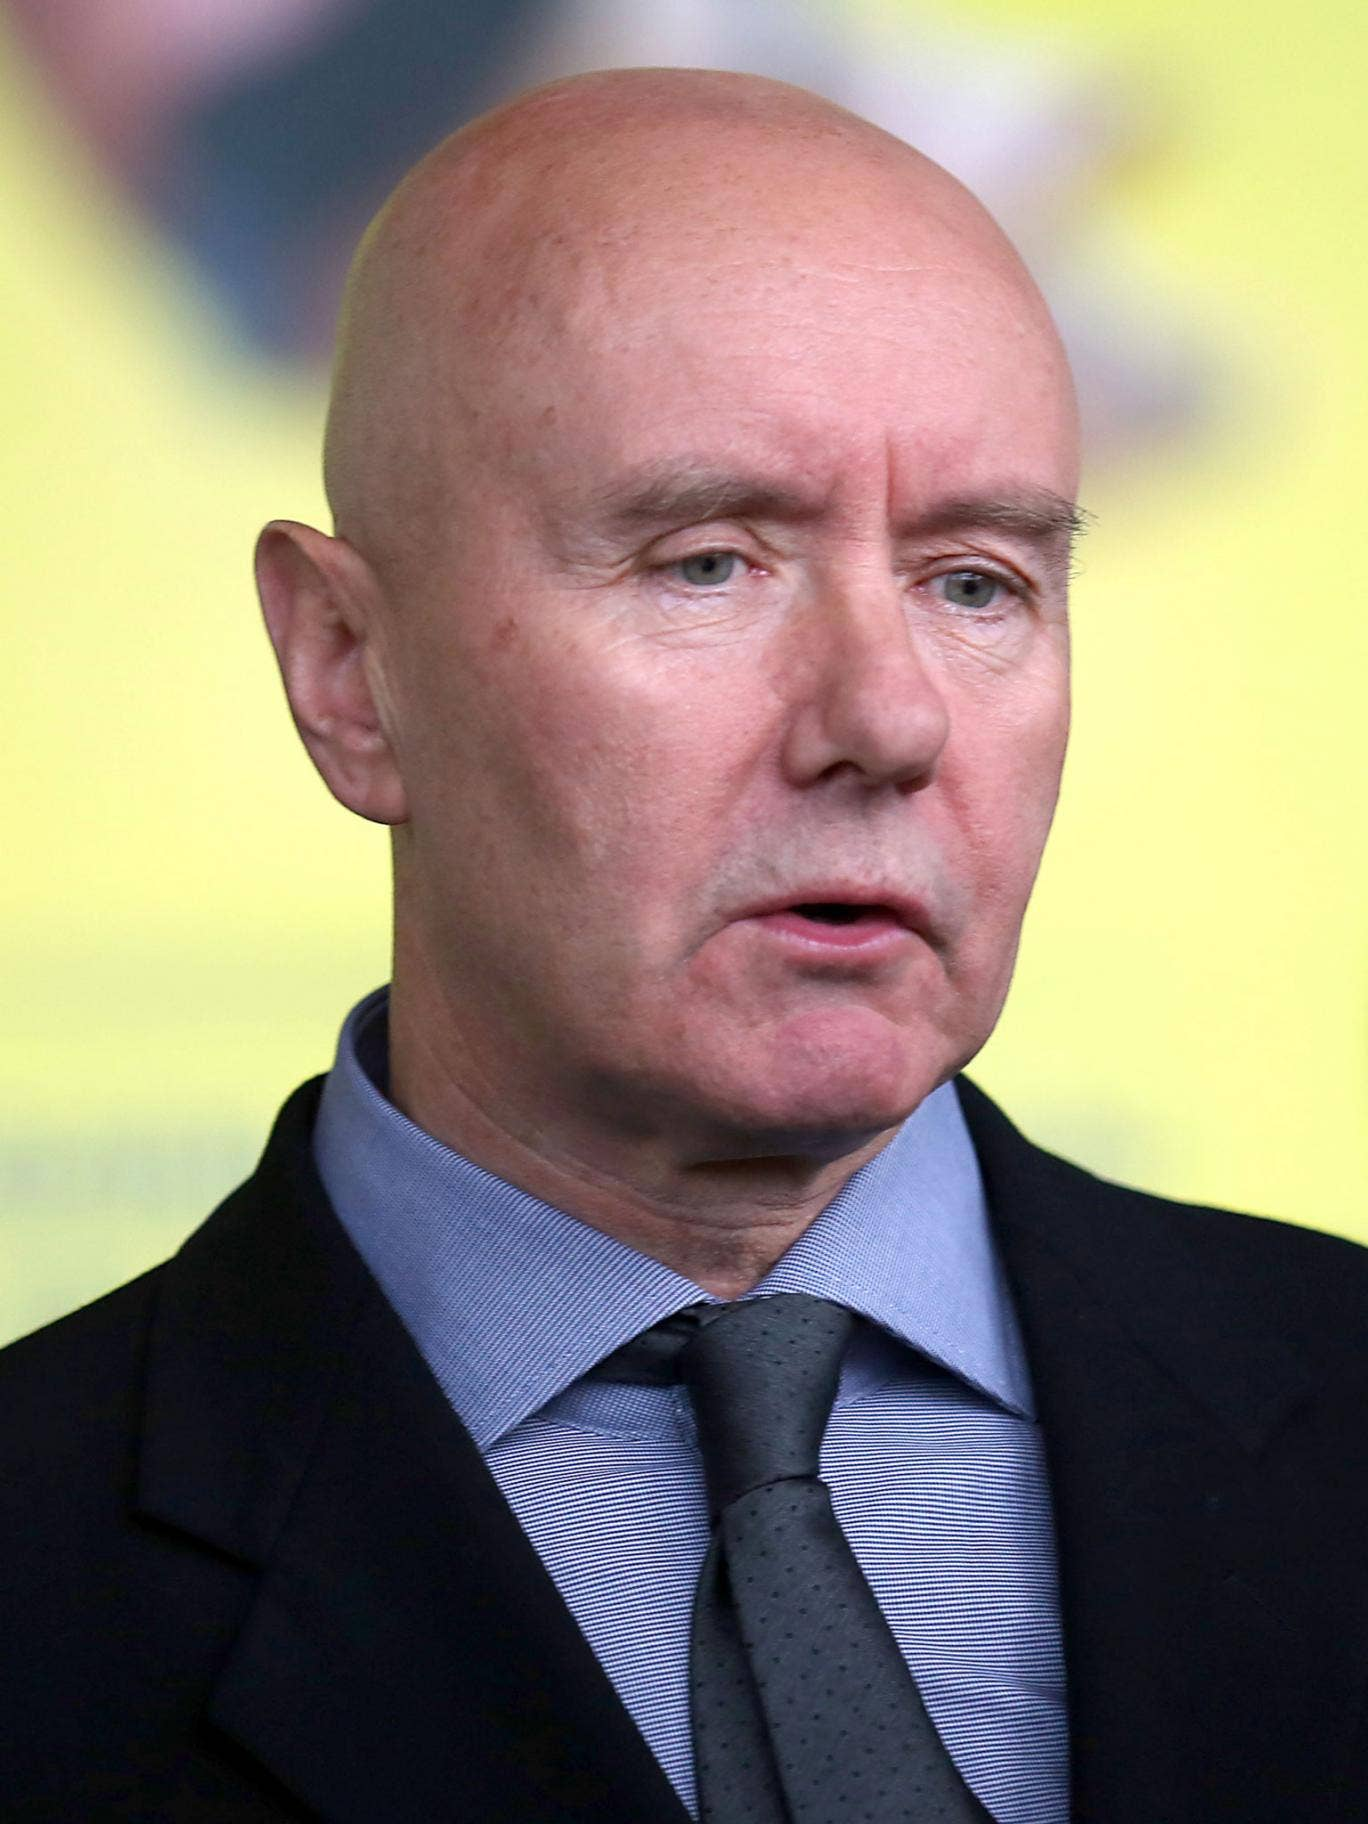 The author of Trainspotting, Irvine Welsh, is revealing an unexpected soft side to one of his most infamous characters